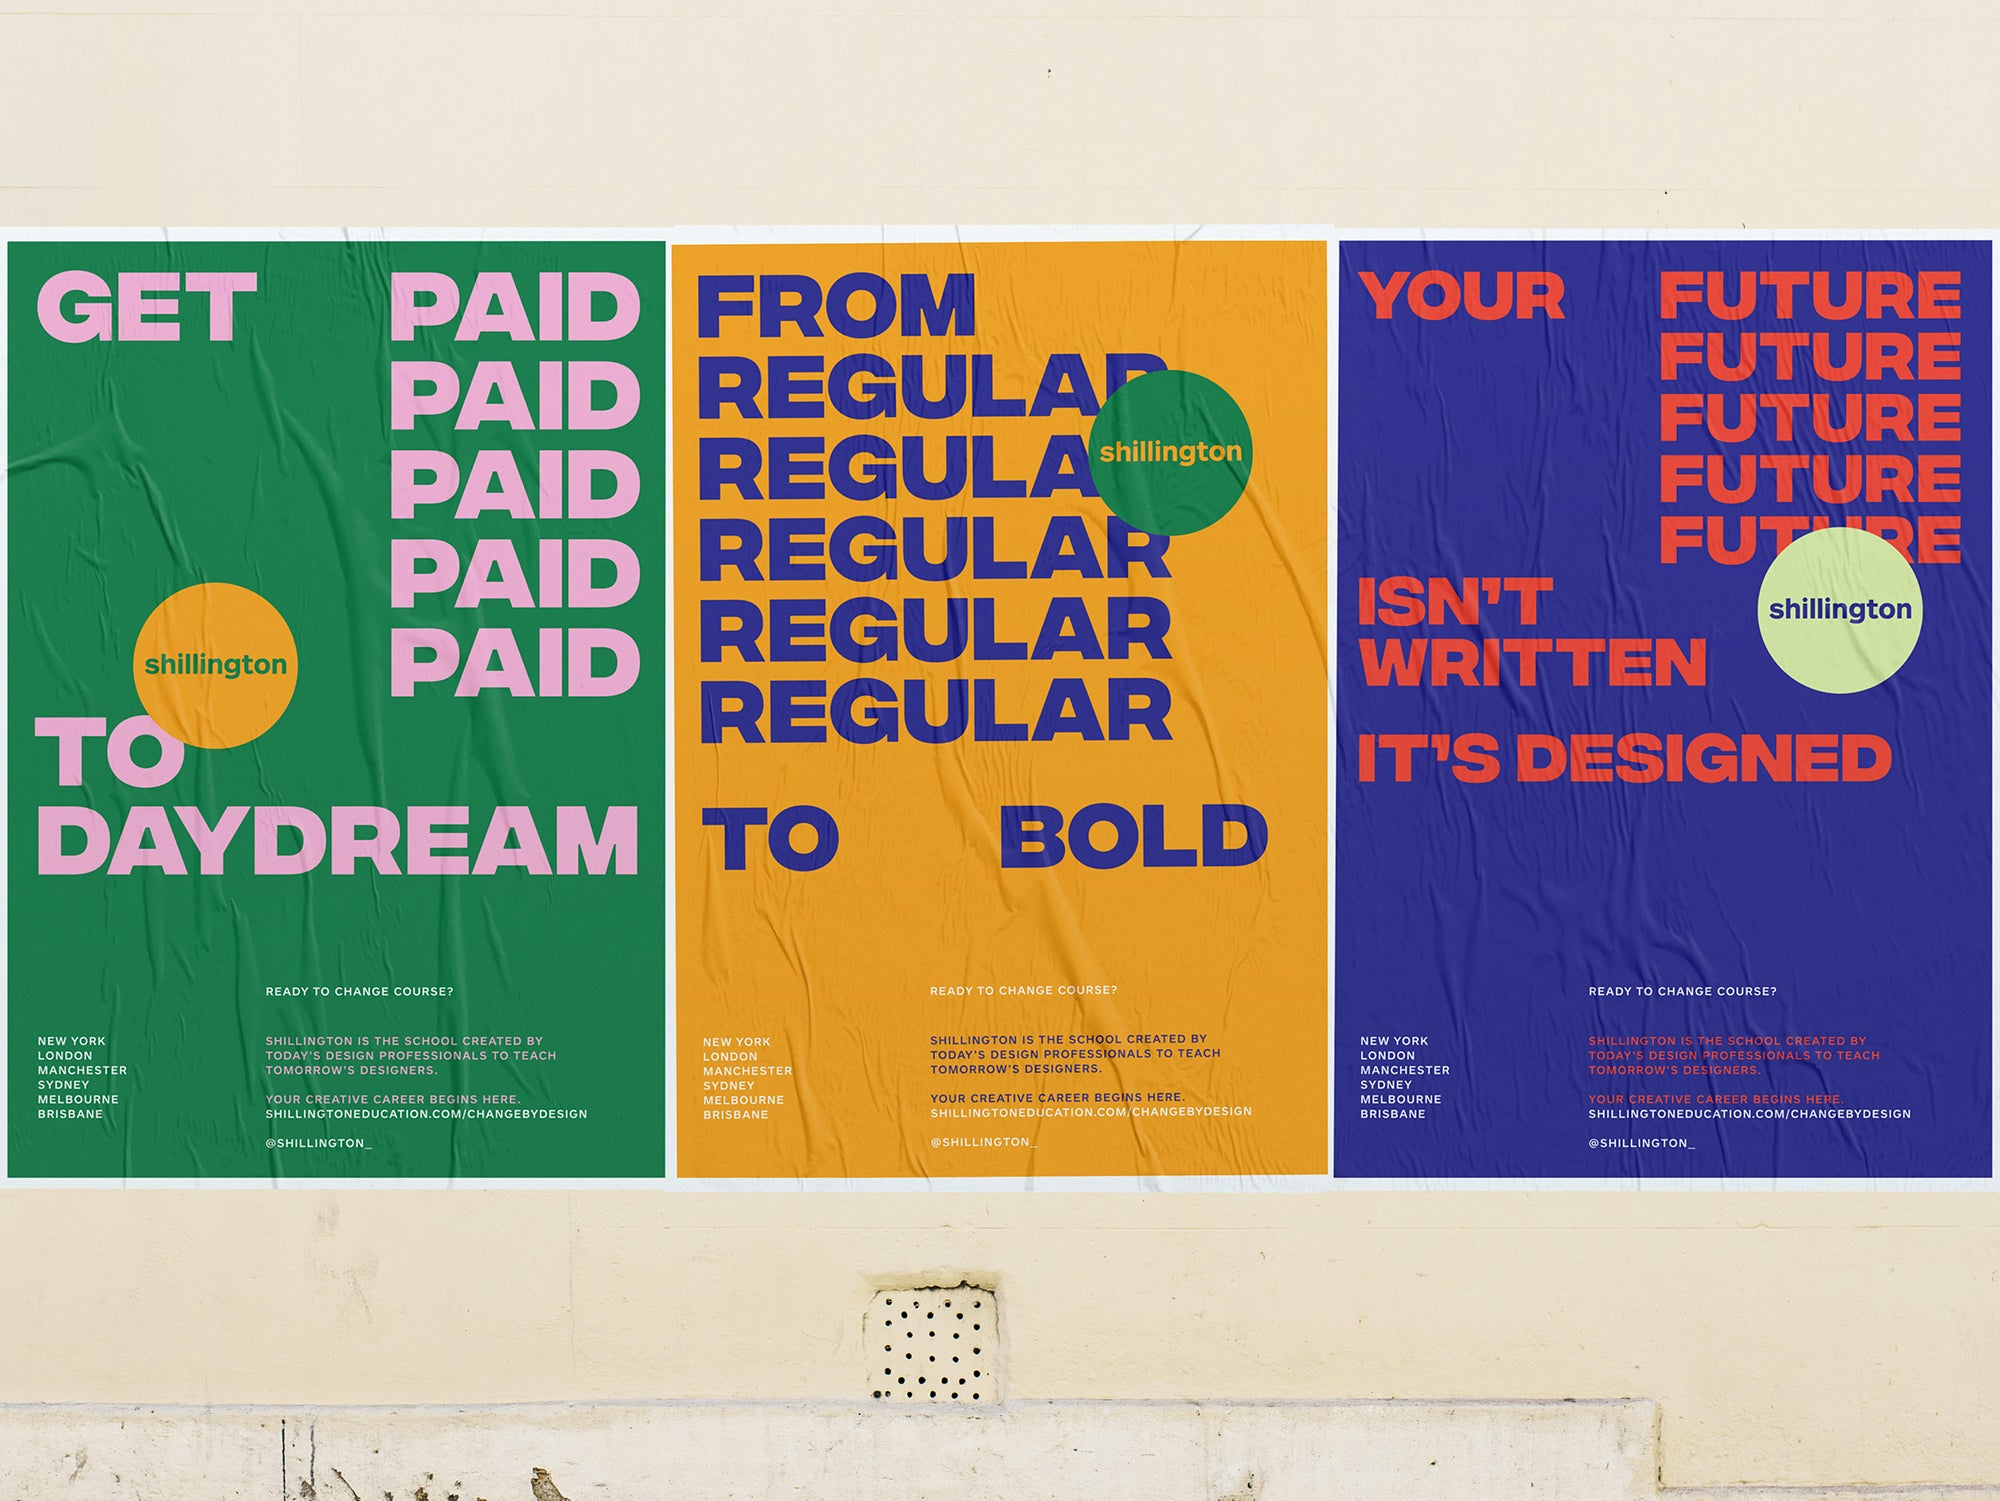 Christopher Doyle & Co: Shillington